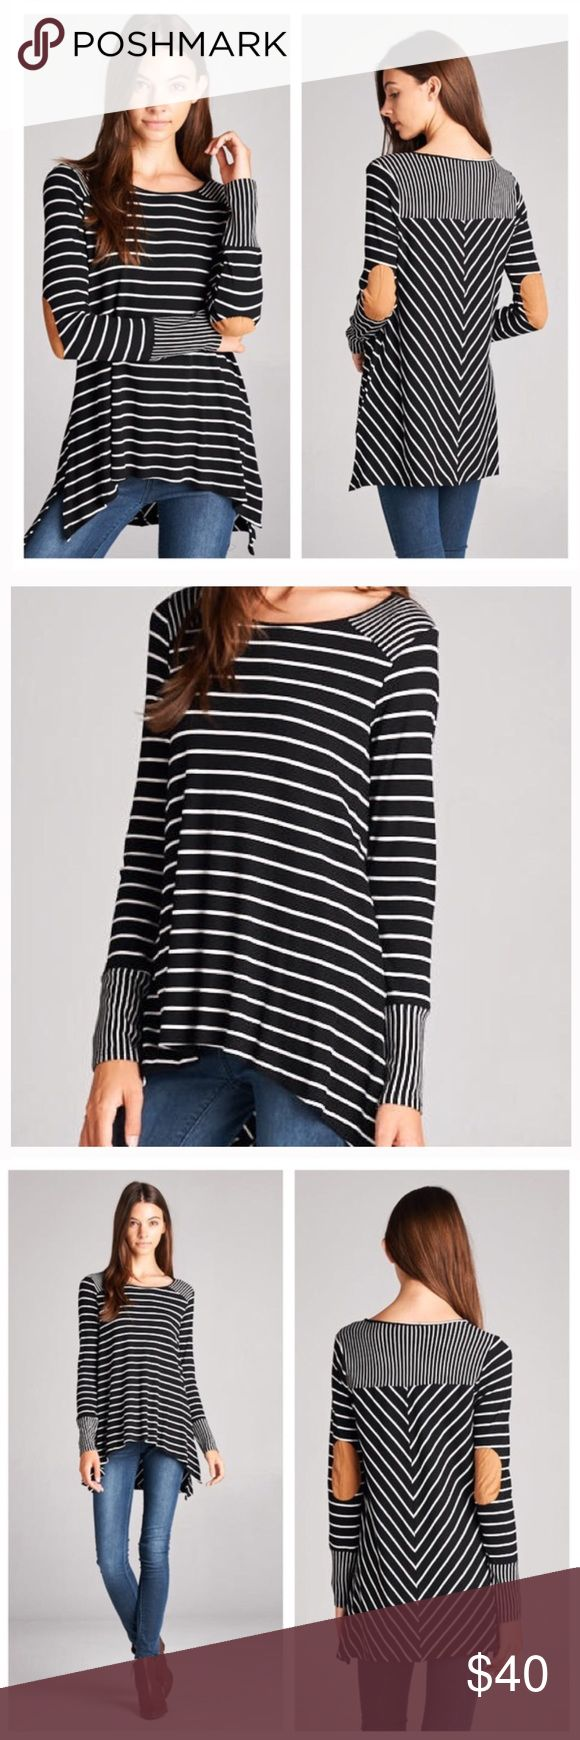 Trip to the Cabin Elbow Patch Thermal NWOT Trip to the Cabin Elbow Patch Thermal NWOT Black and Ivory Striped Thermal Knit Long sleeve with Suede Elbow Patches Boat Neckline Shark Bite hemline and side slits 95% rayon 5% spandex staccato Tops